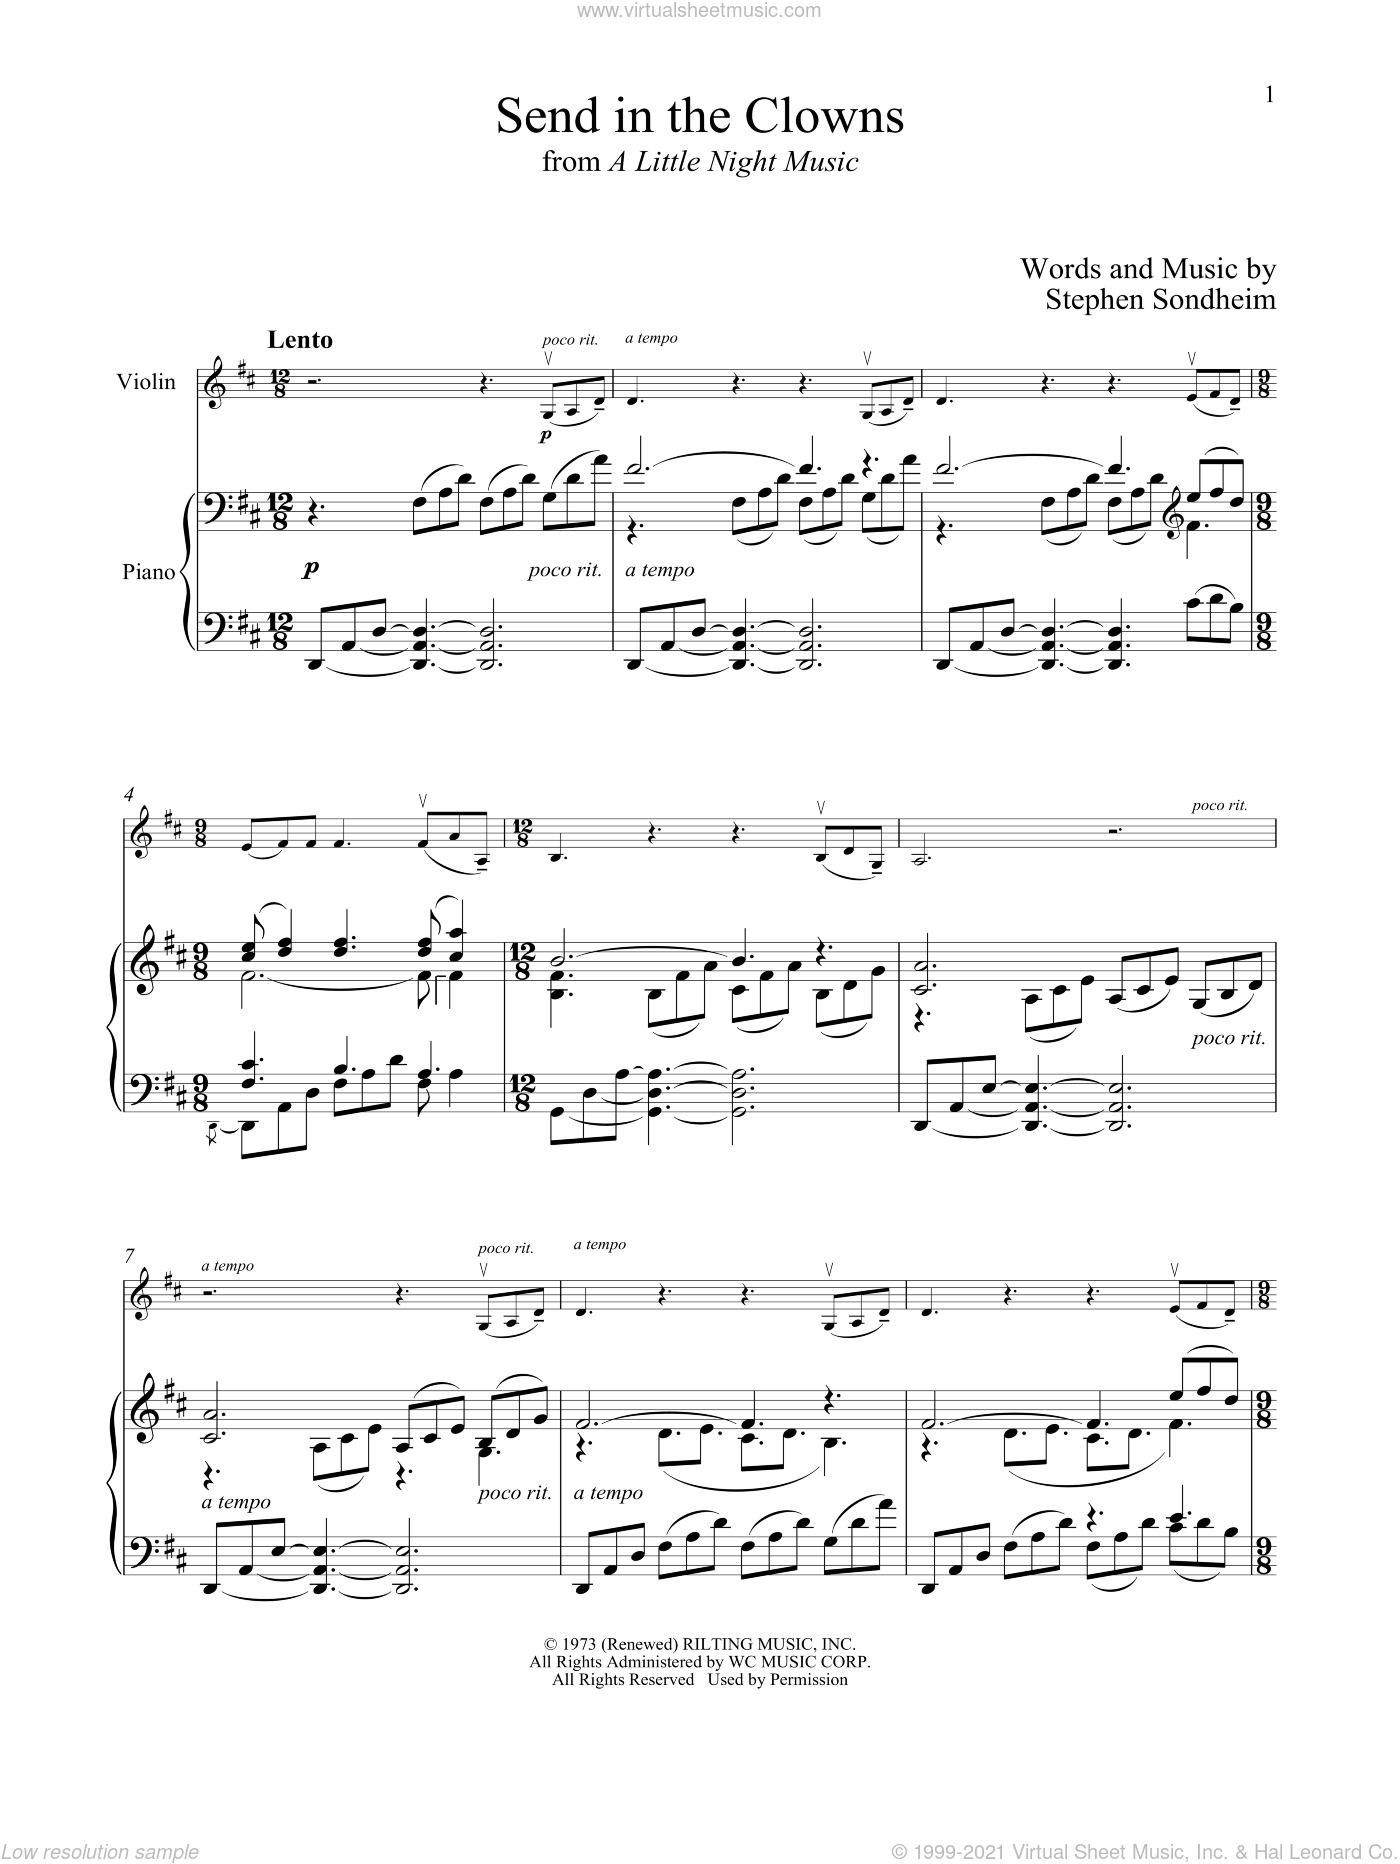 Send In The Clowns (from A Little Night Music) sheet music for violin and piano by Stephen Sondheim, intermediate skill level